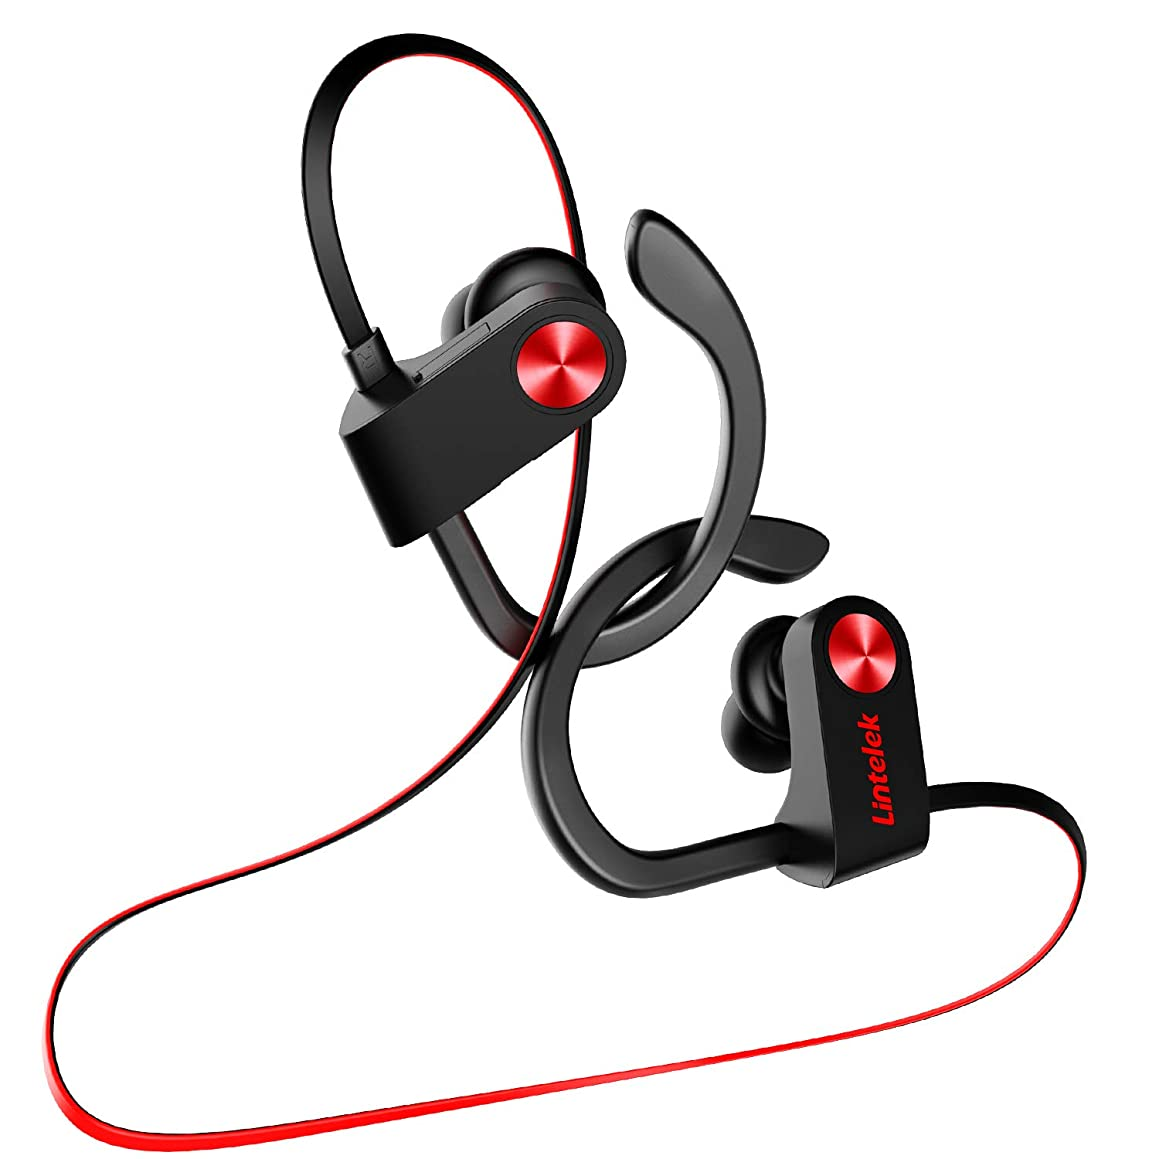 Lintelek Wireless Headphones Sport Earphones Stereo Sound Deep Bass Noise Canceling Secure Fit Lightweight in-Ear Headset IPX7 Waterproof 9Hr Battery Standby with Built-in Mic for Running Gym